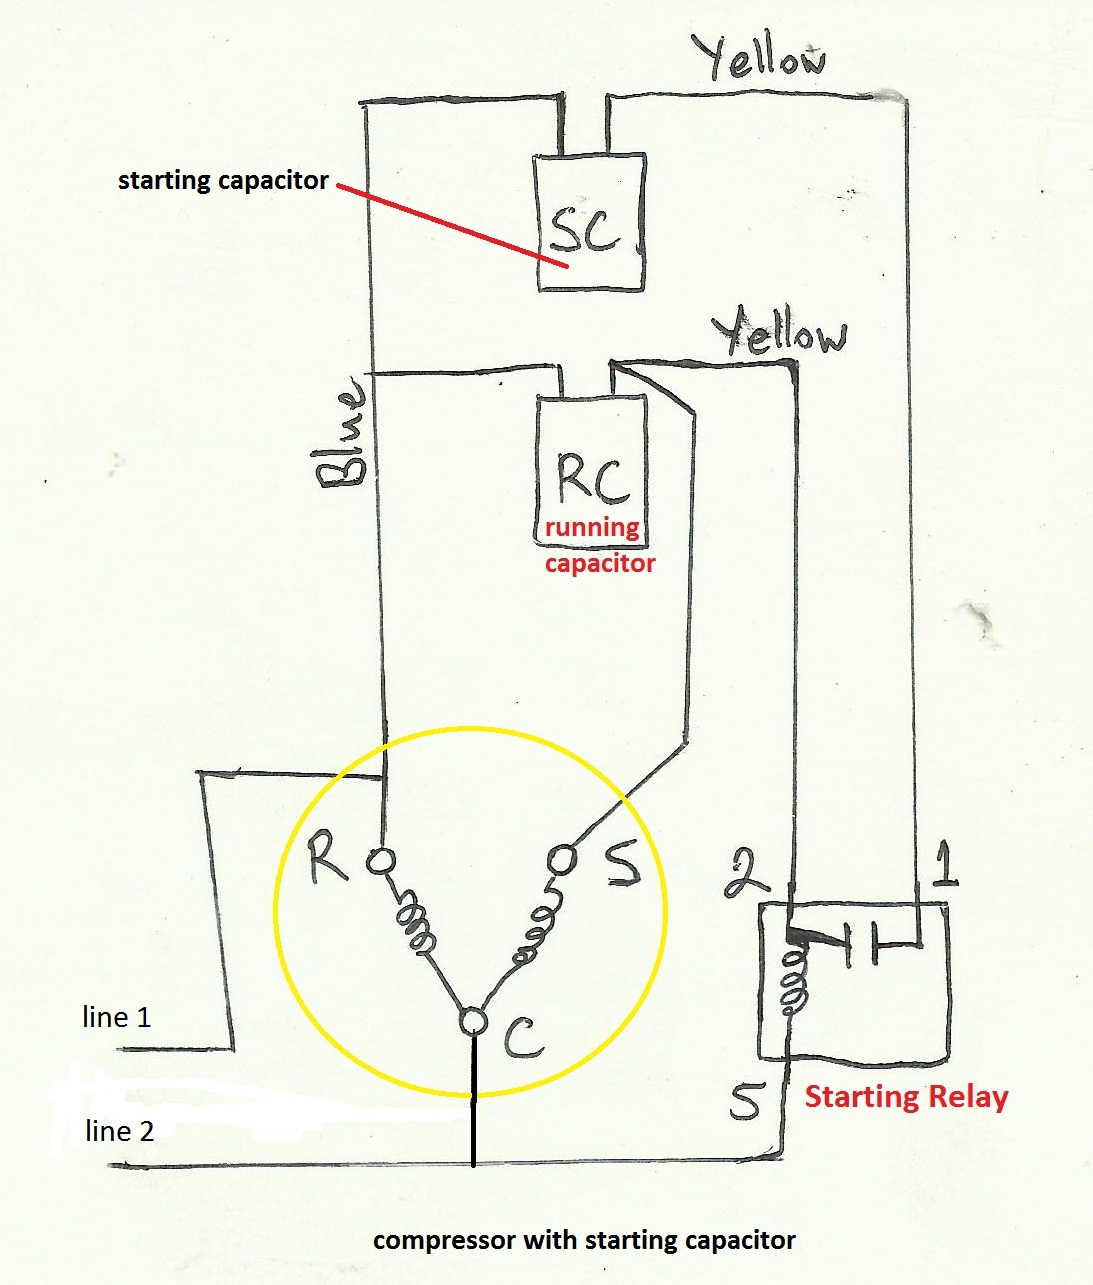 refrigeration and air conditioning repair wiring diagram of compressor with starting capacitor